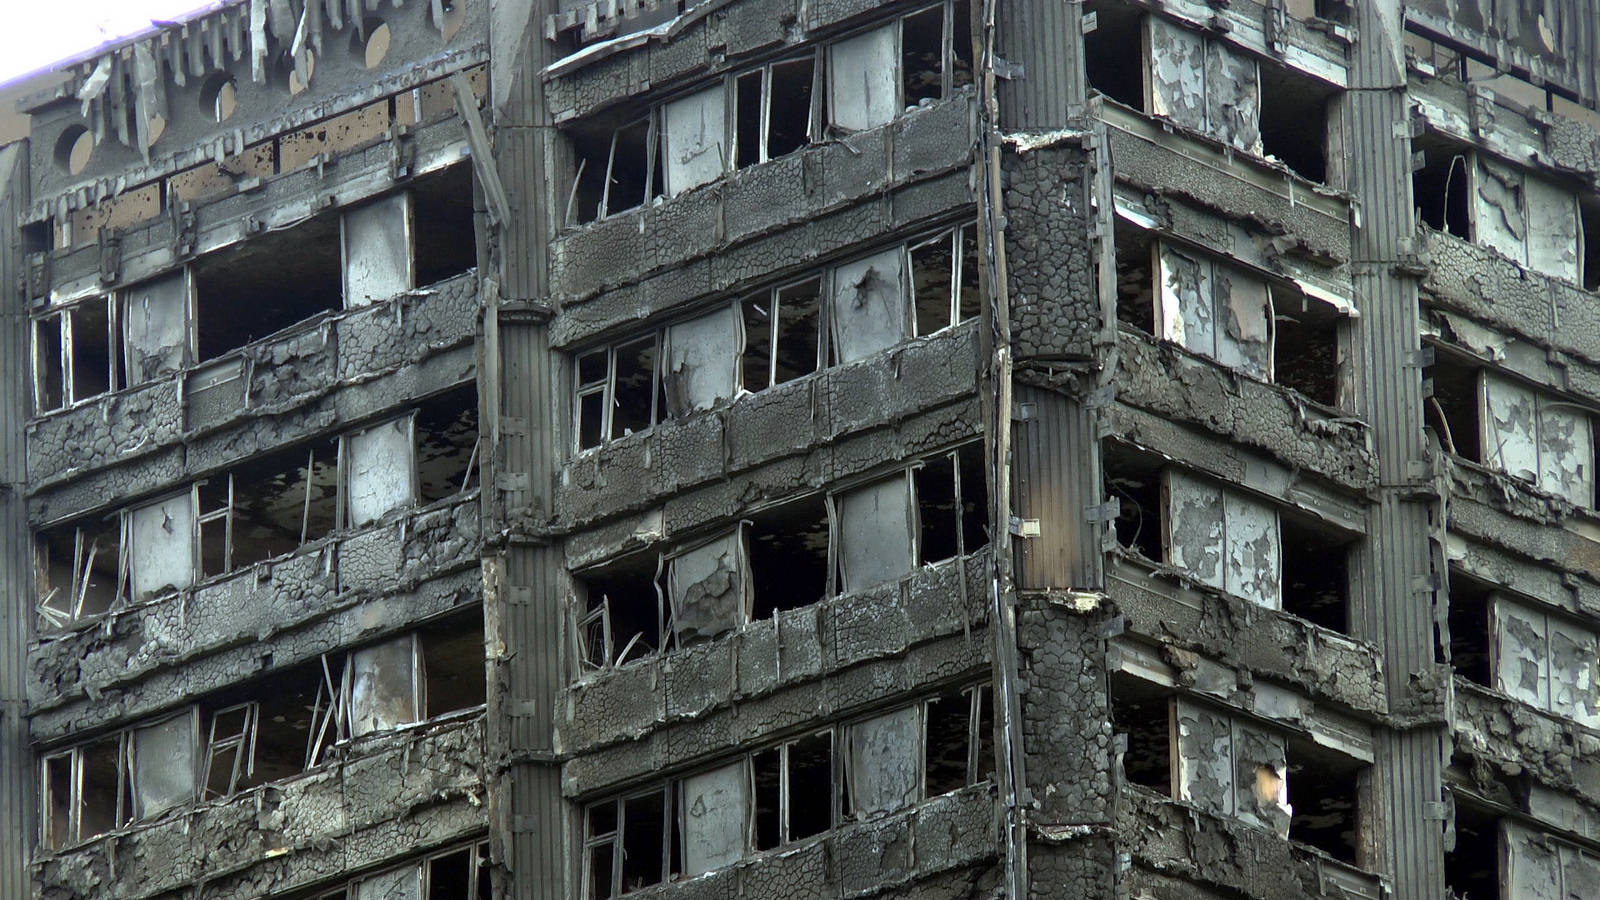 Human rights commission launches its own Grenfell inquiry